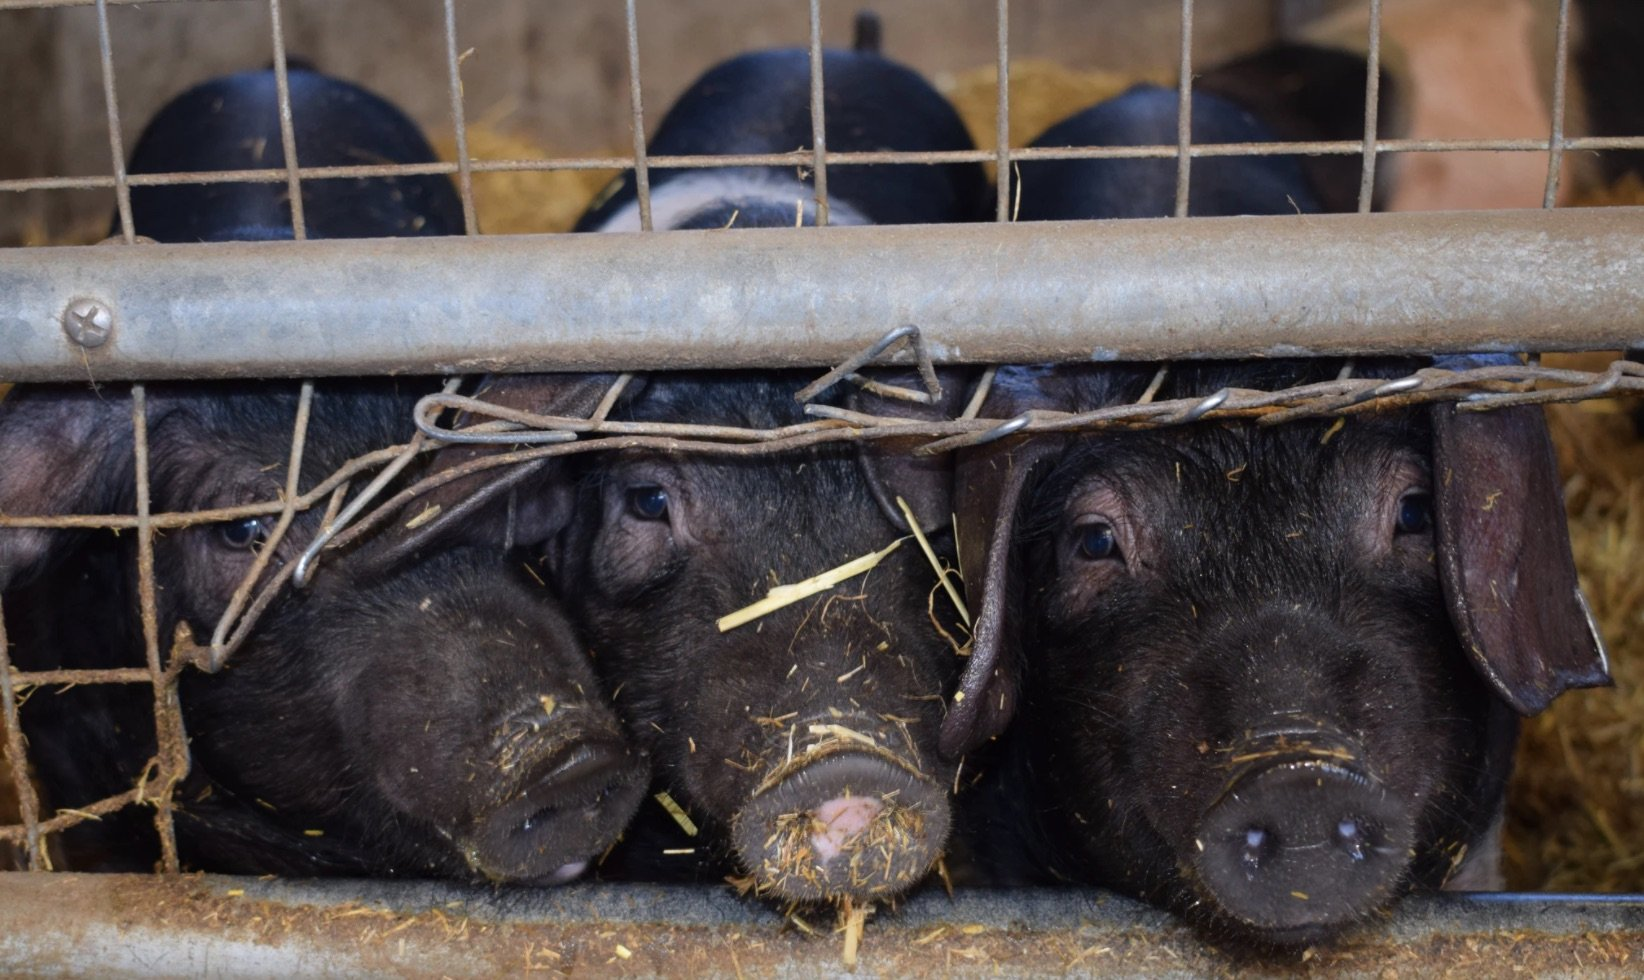 Pig rearing in France